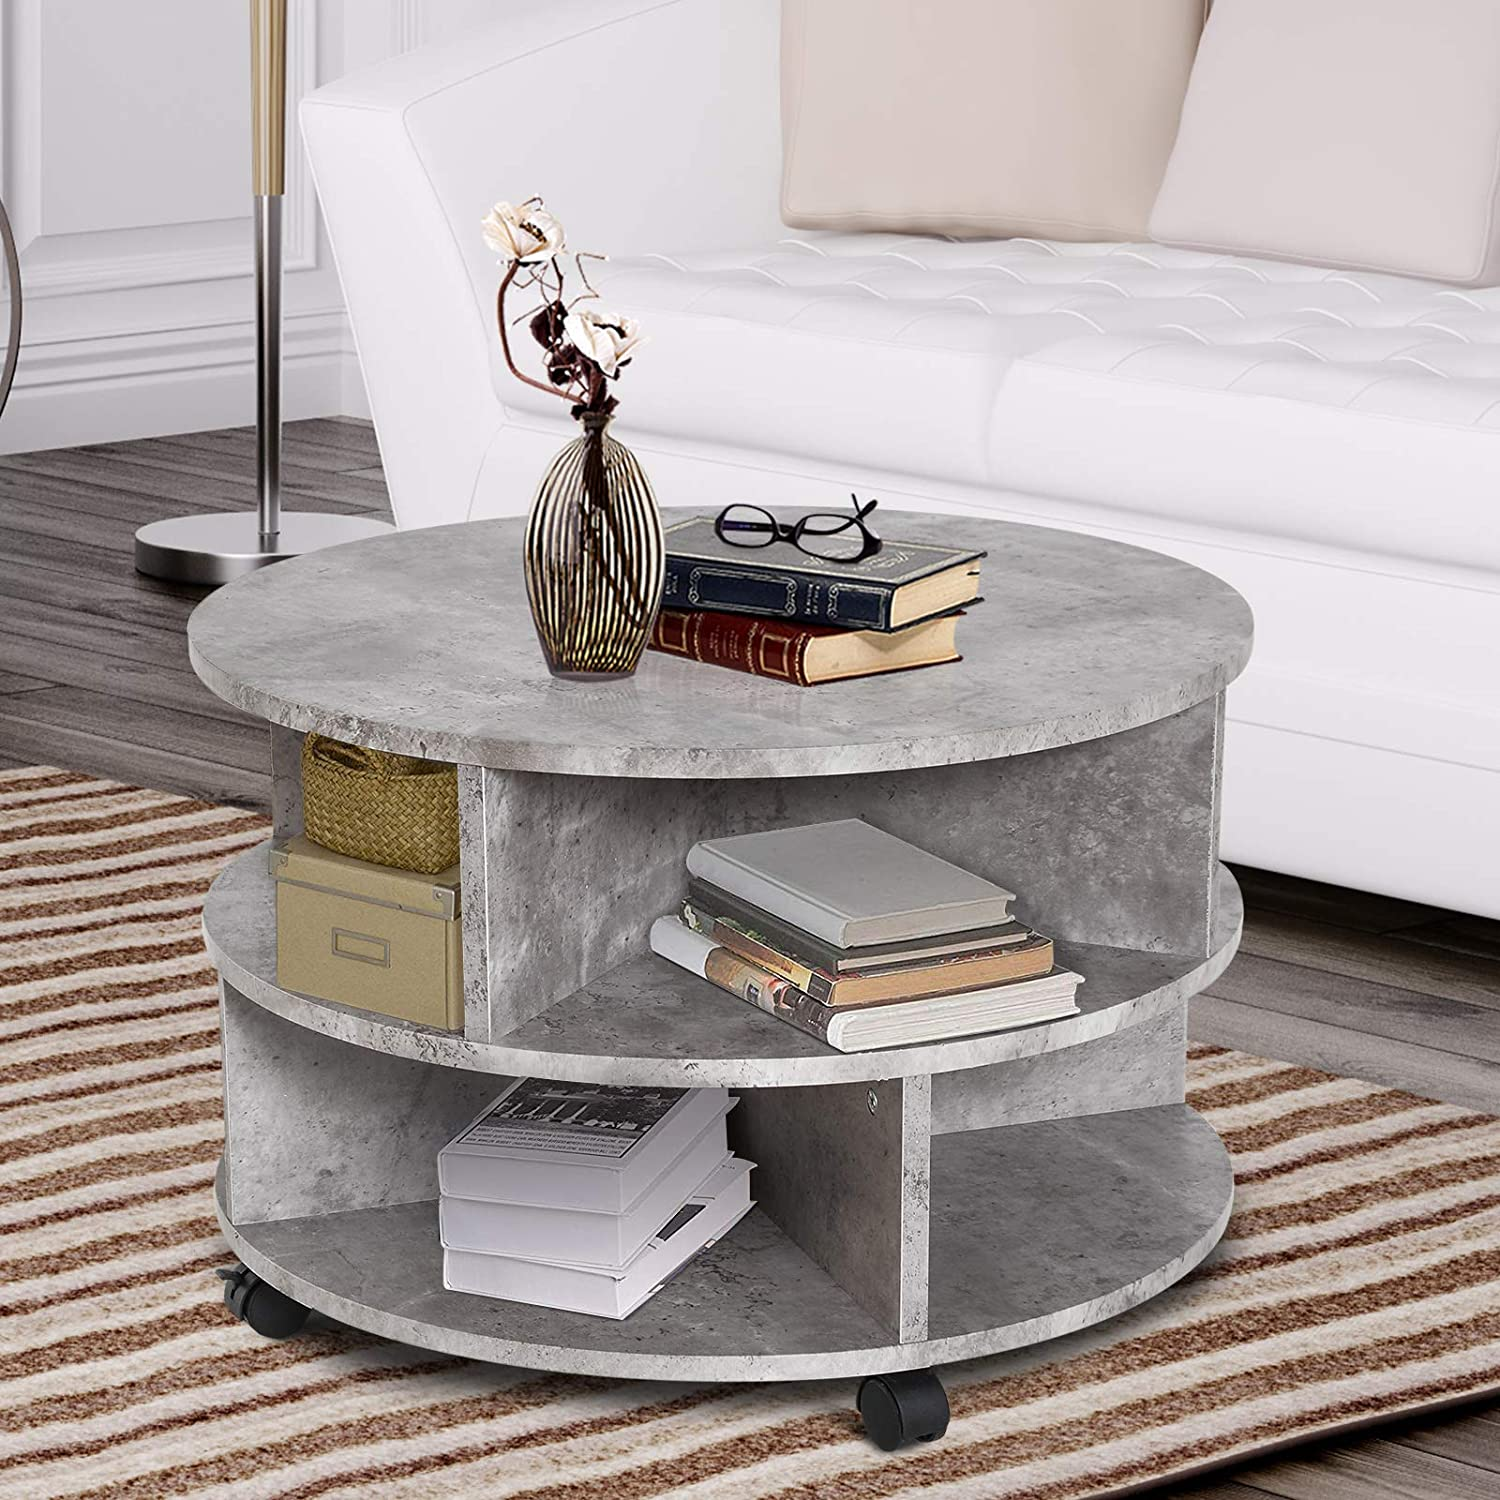 Cement colour Sold by MHSTAR HOMCOM 2 Tier Round Side End Table Coffee Desk with Divided Shelves Tea Table Storage Unit Living Room Organiser with Wheels